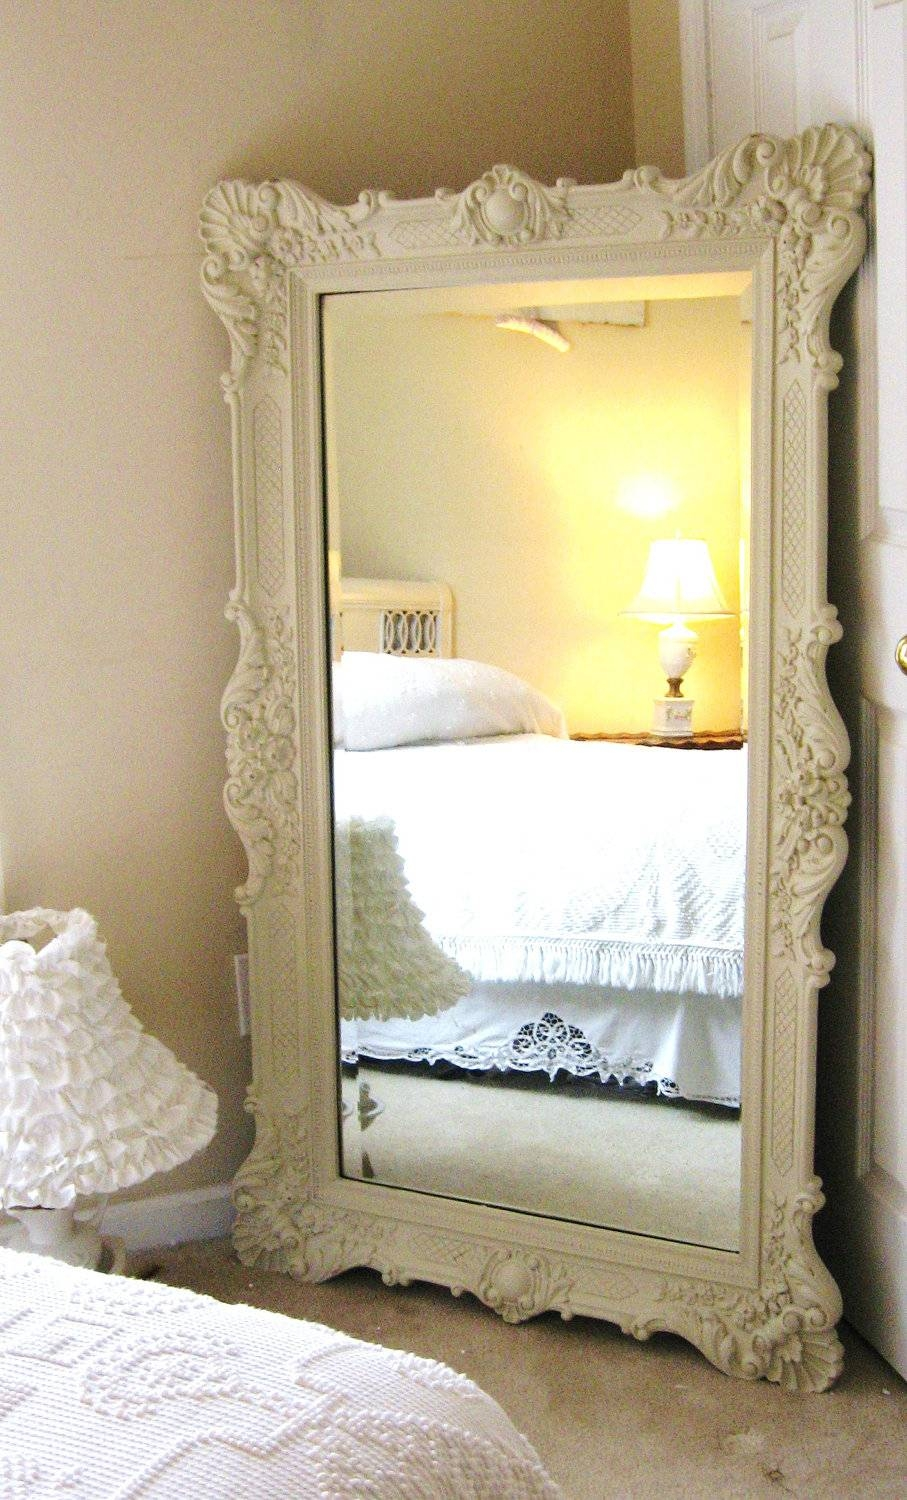 Antique White Floor Mirror 11 Stunning Decor With Vintage Leaning in Vintage White Mirrors (Image 3 of 25)